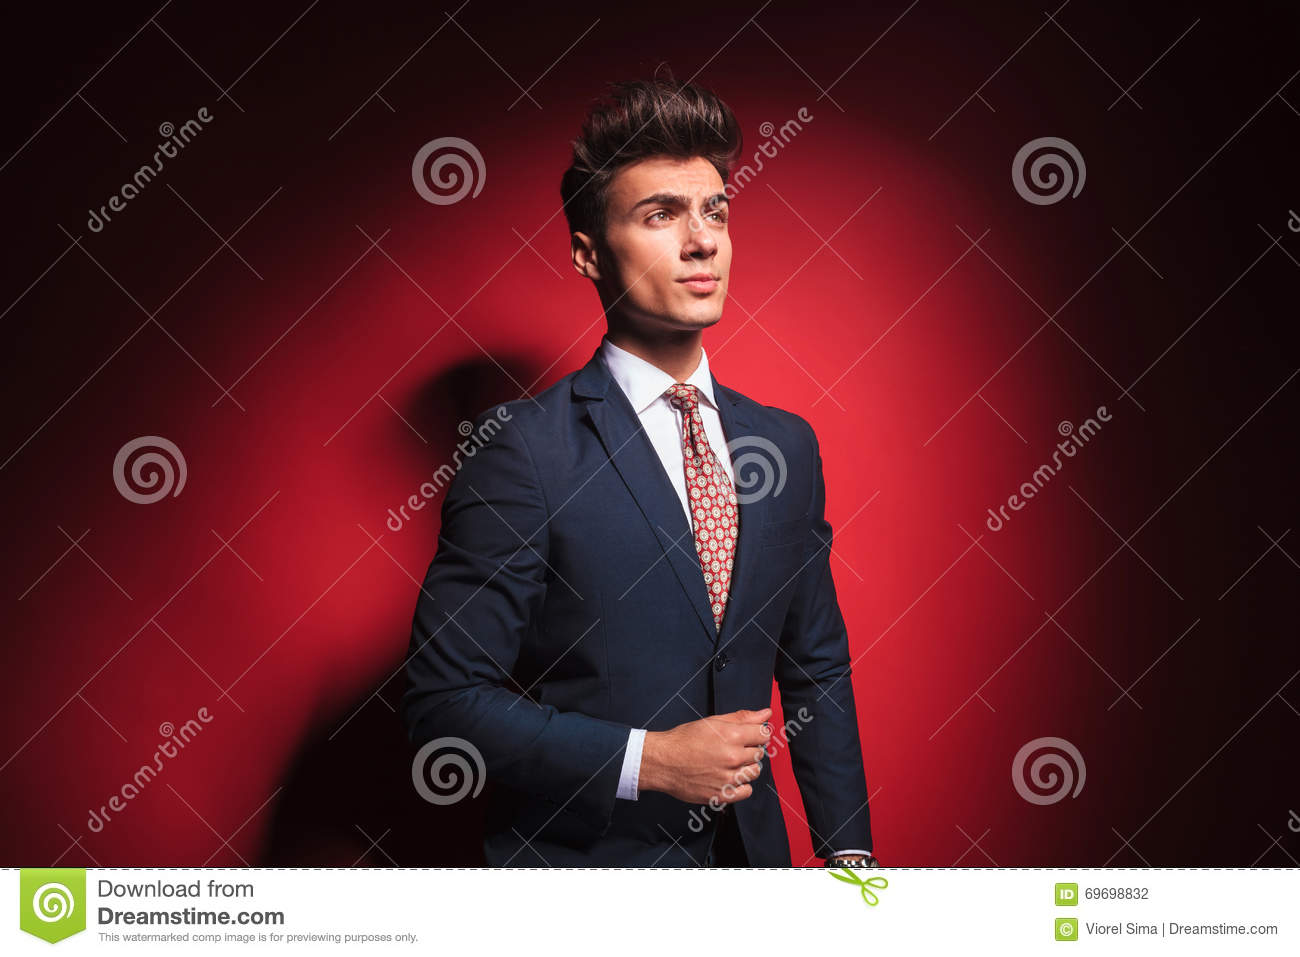 d37529e97290 Portrait of confident young businessman in black suit with red tie posing  arranging his jacket and looking away from the camera in red studio  background